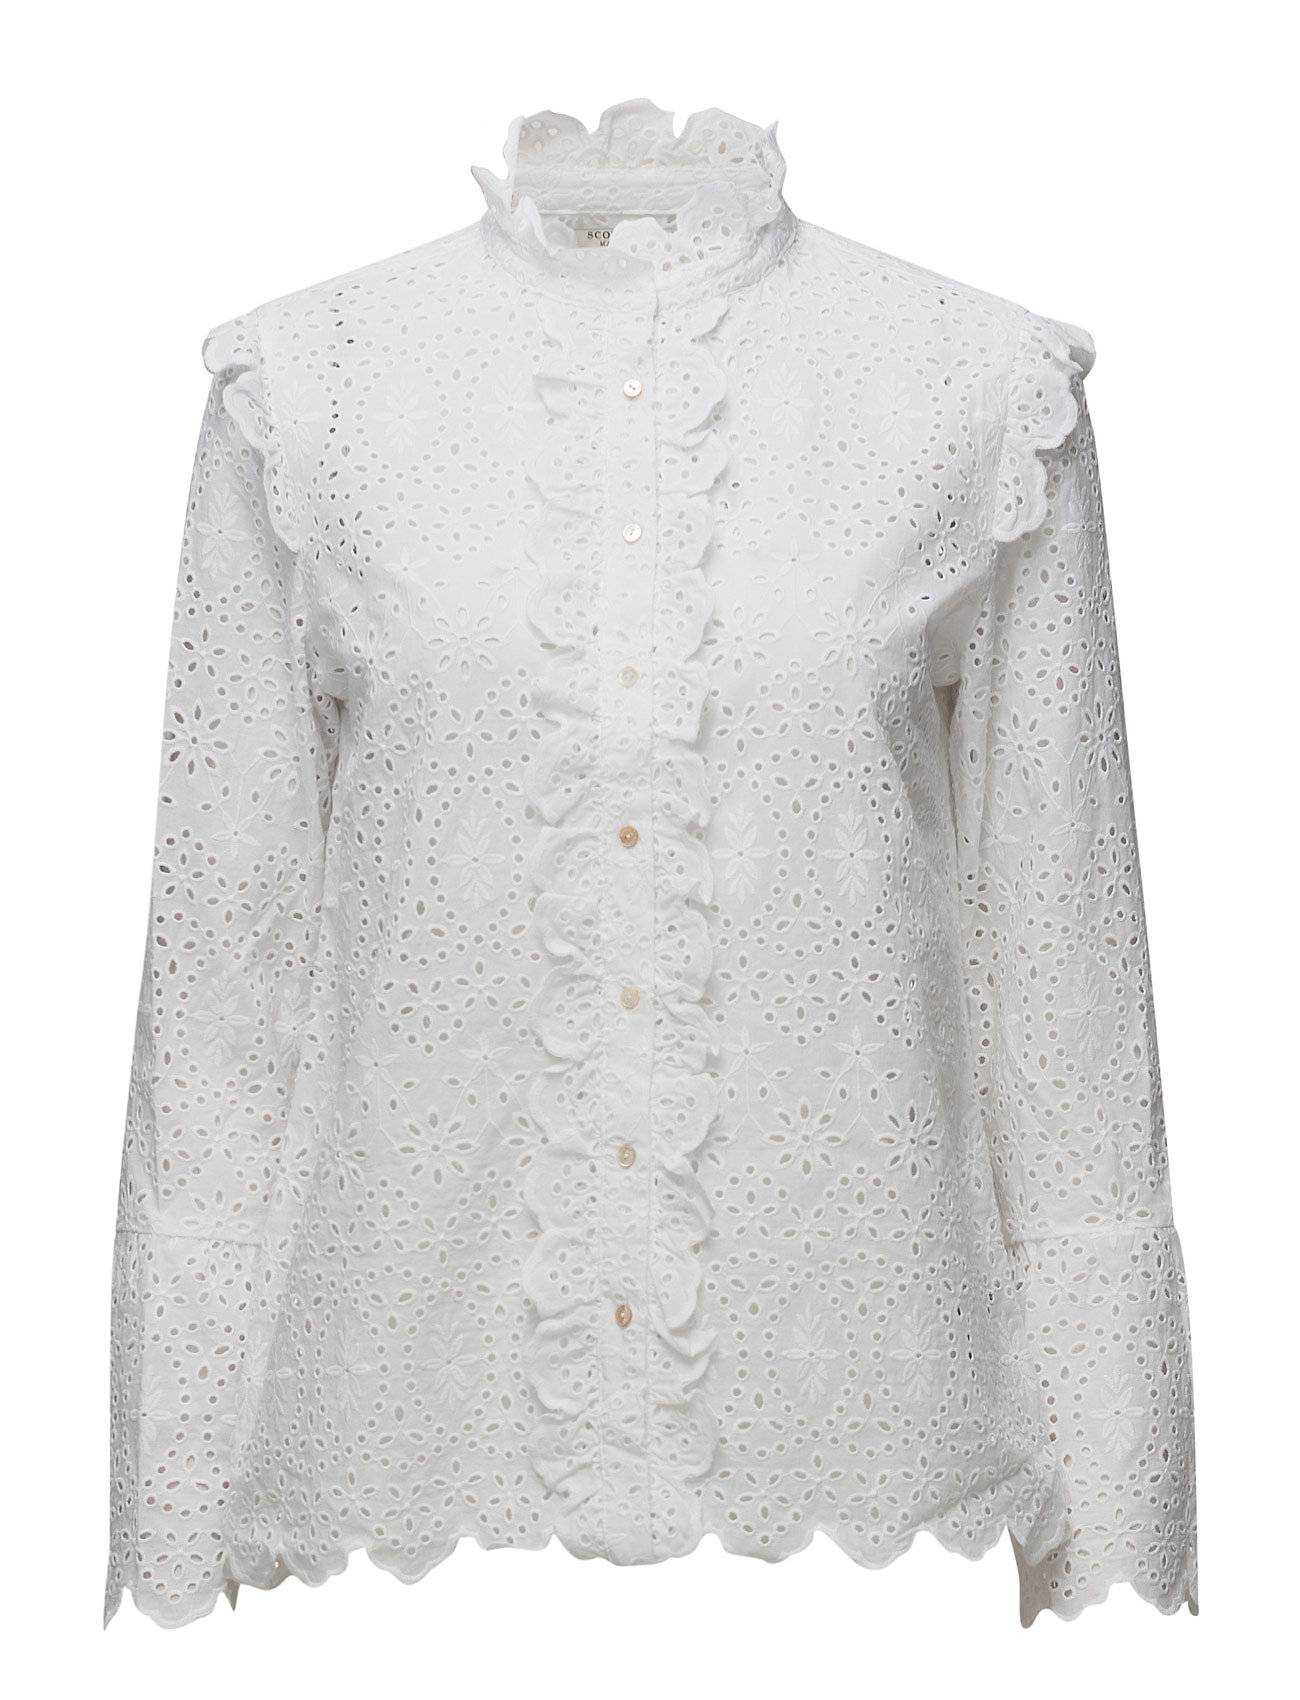 Scotch & Soda Broderie Anglaise Button Up Shirt With Ruffle Details